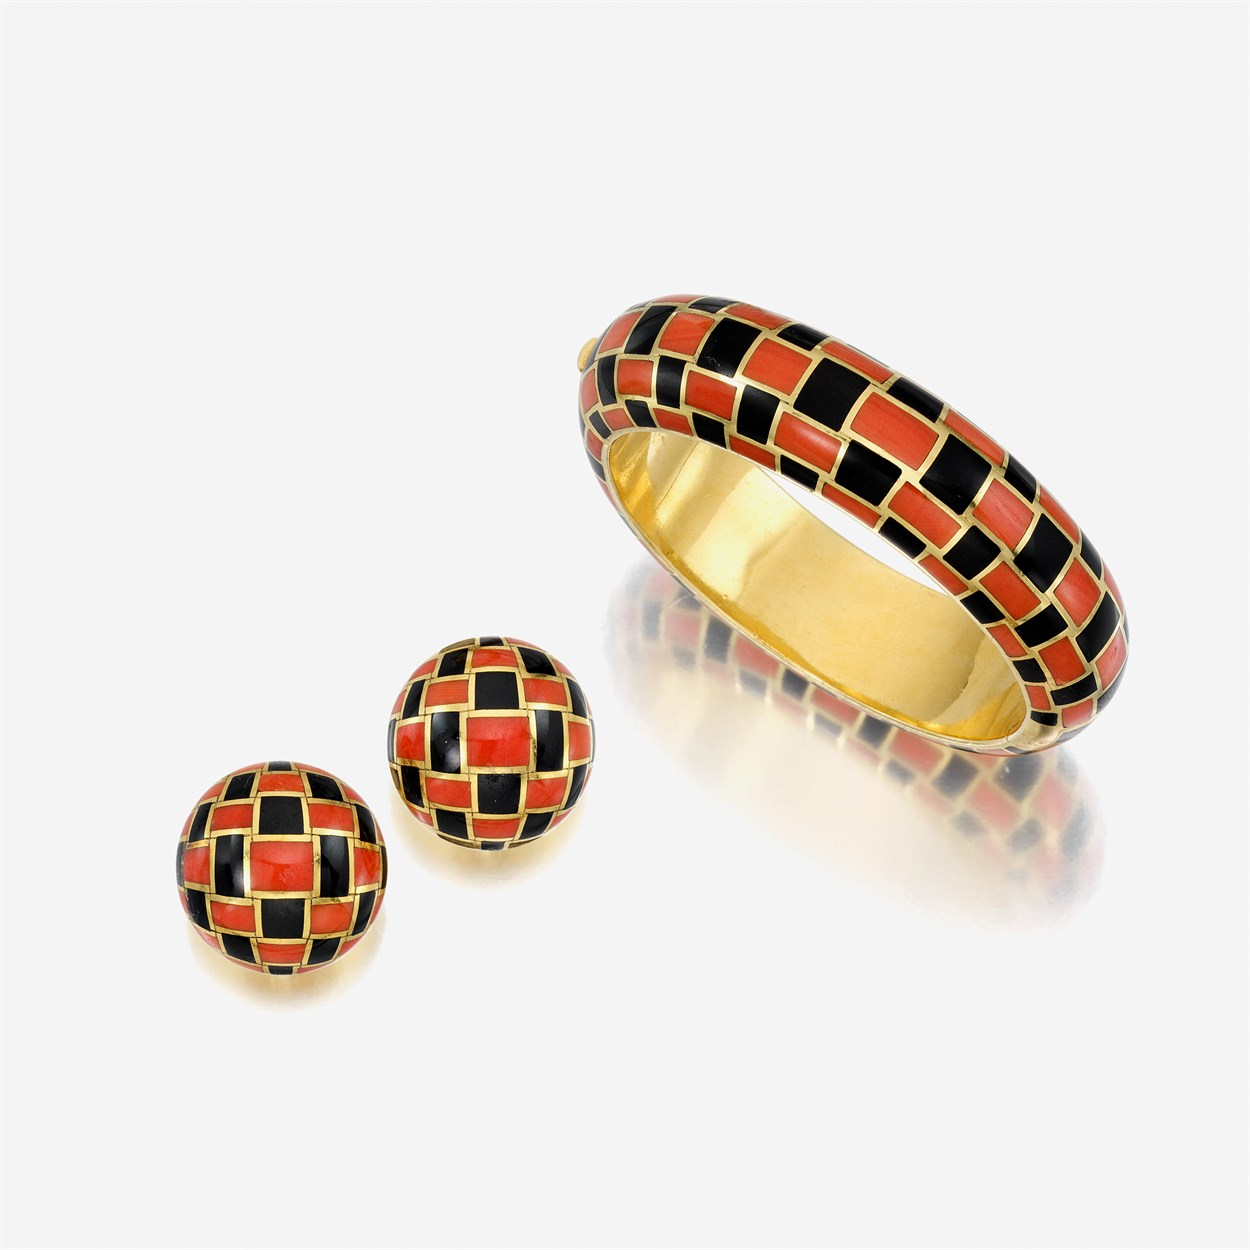 Lot 99 - An eighteen karat gold, coral, and black jade bangle with matching earrings,  Tiffany & Co.